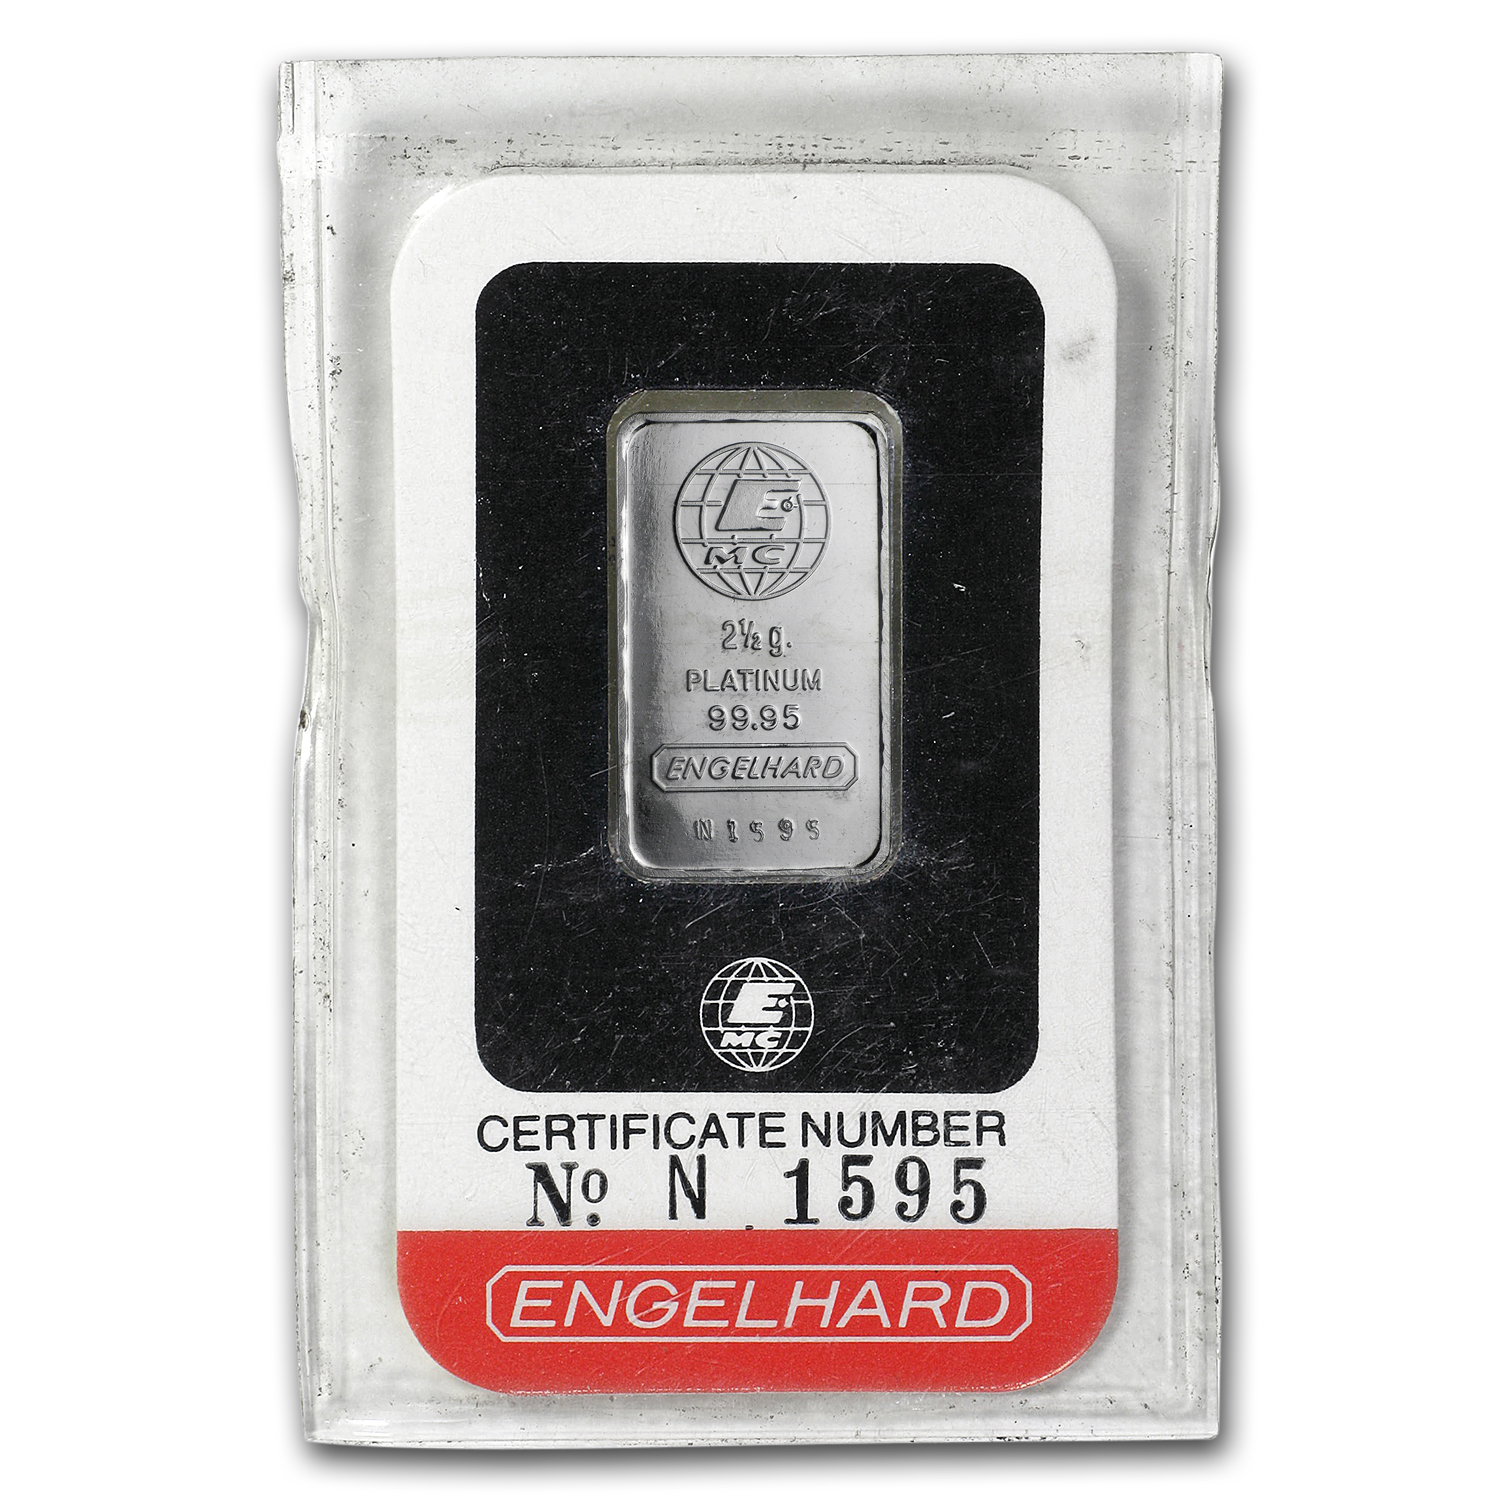 2.5 gram Platinum Bar - Engelhard (In Assay)